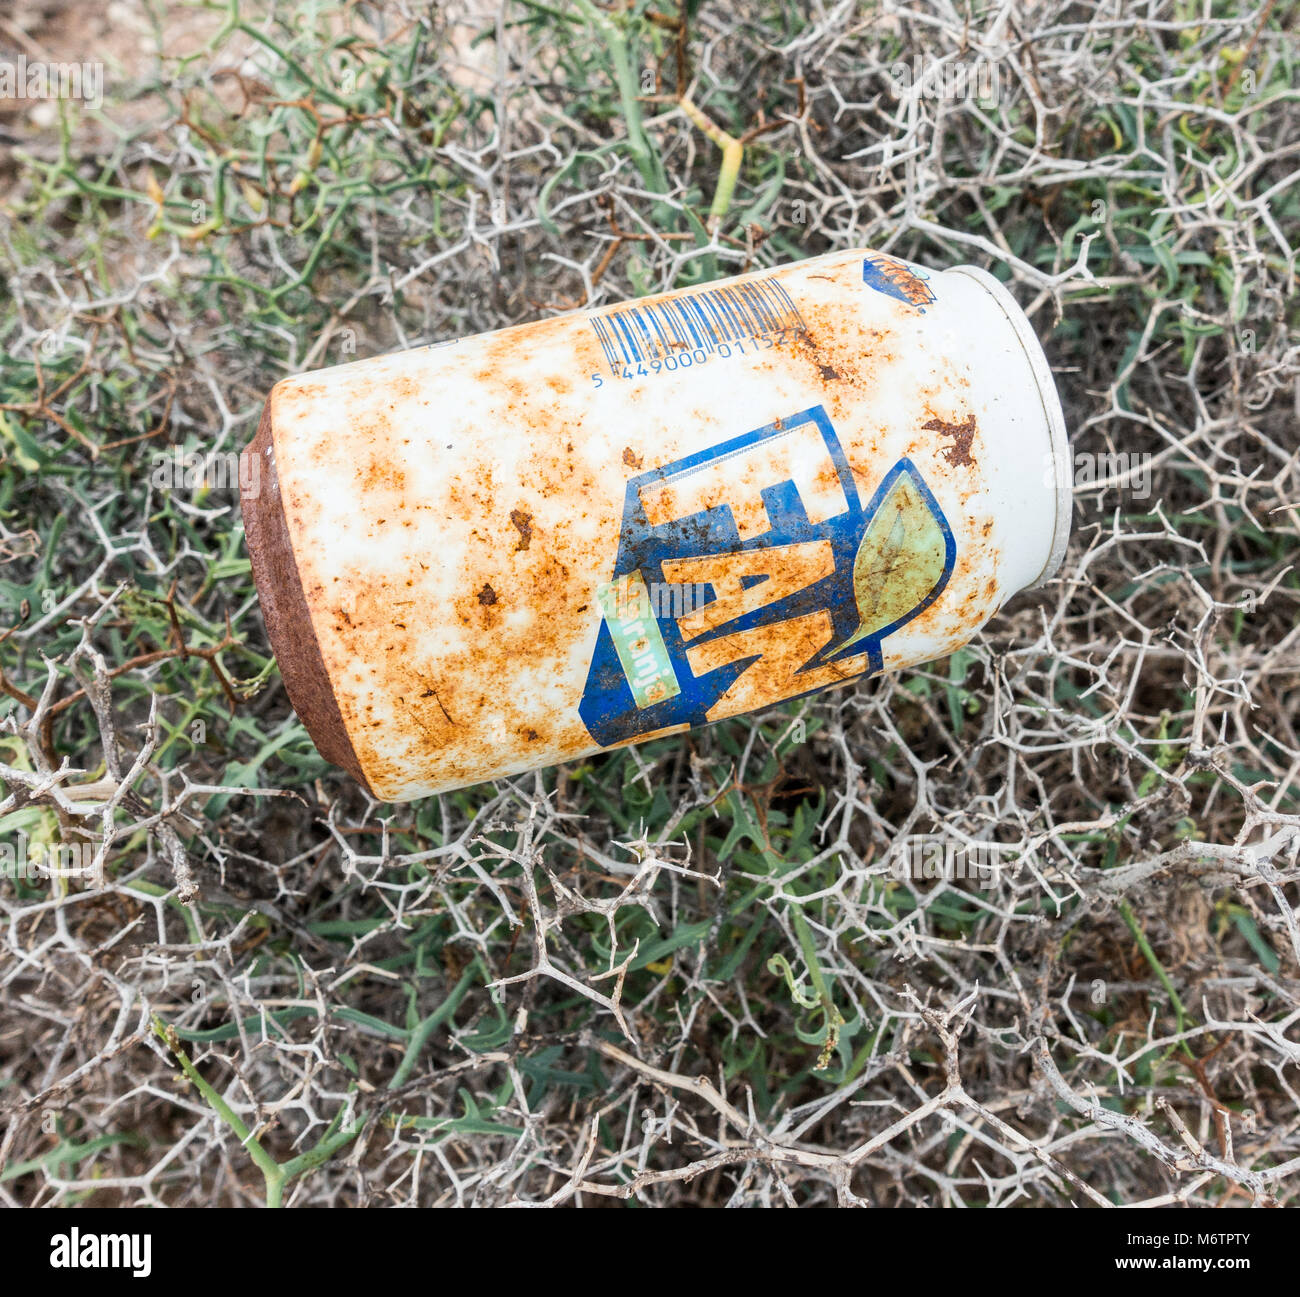 Rusty, discarded Fanta tin in countryside - Stock Image